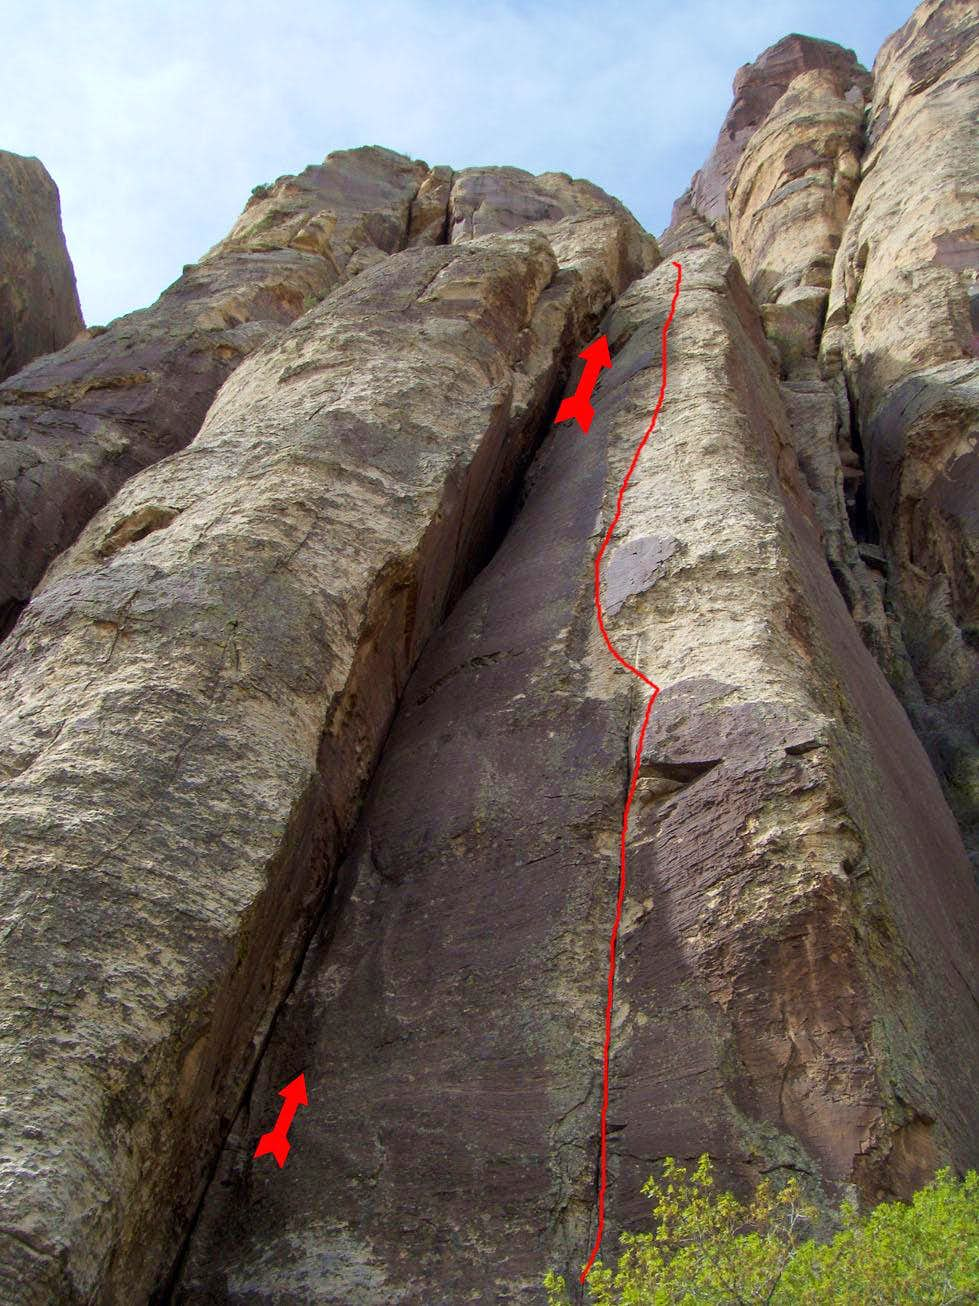 Test Tube, 5.9, 3 Pitches